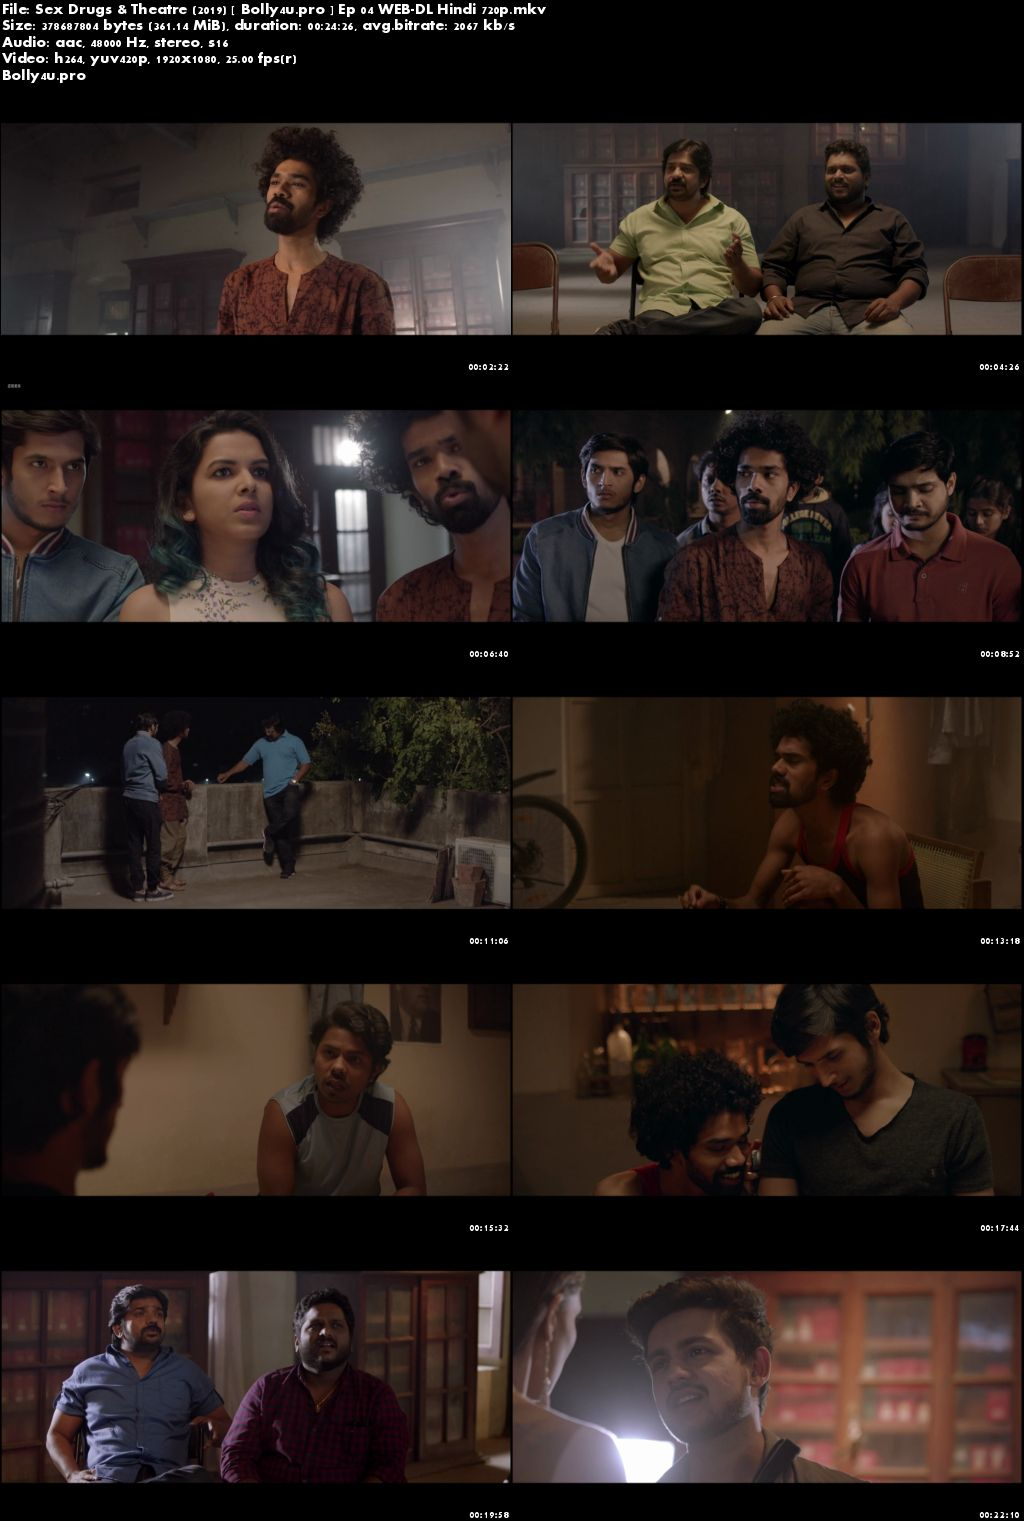 Sex Drugs and Theatre 2019 WEB-DL 4GB Hindi Complete Season Download 720p